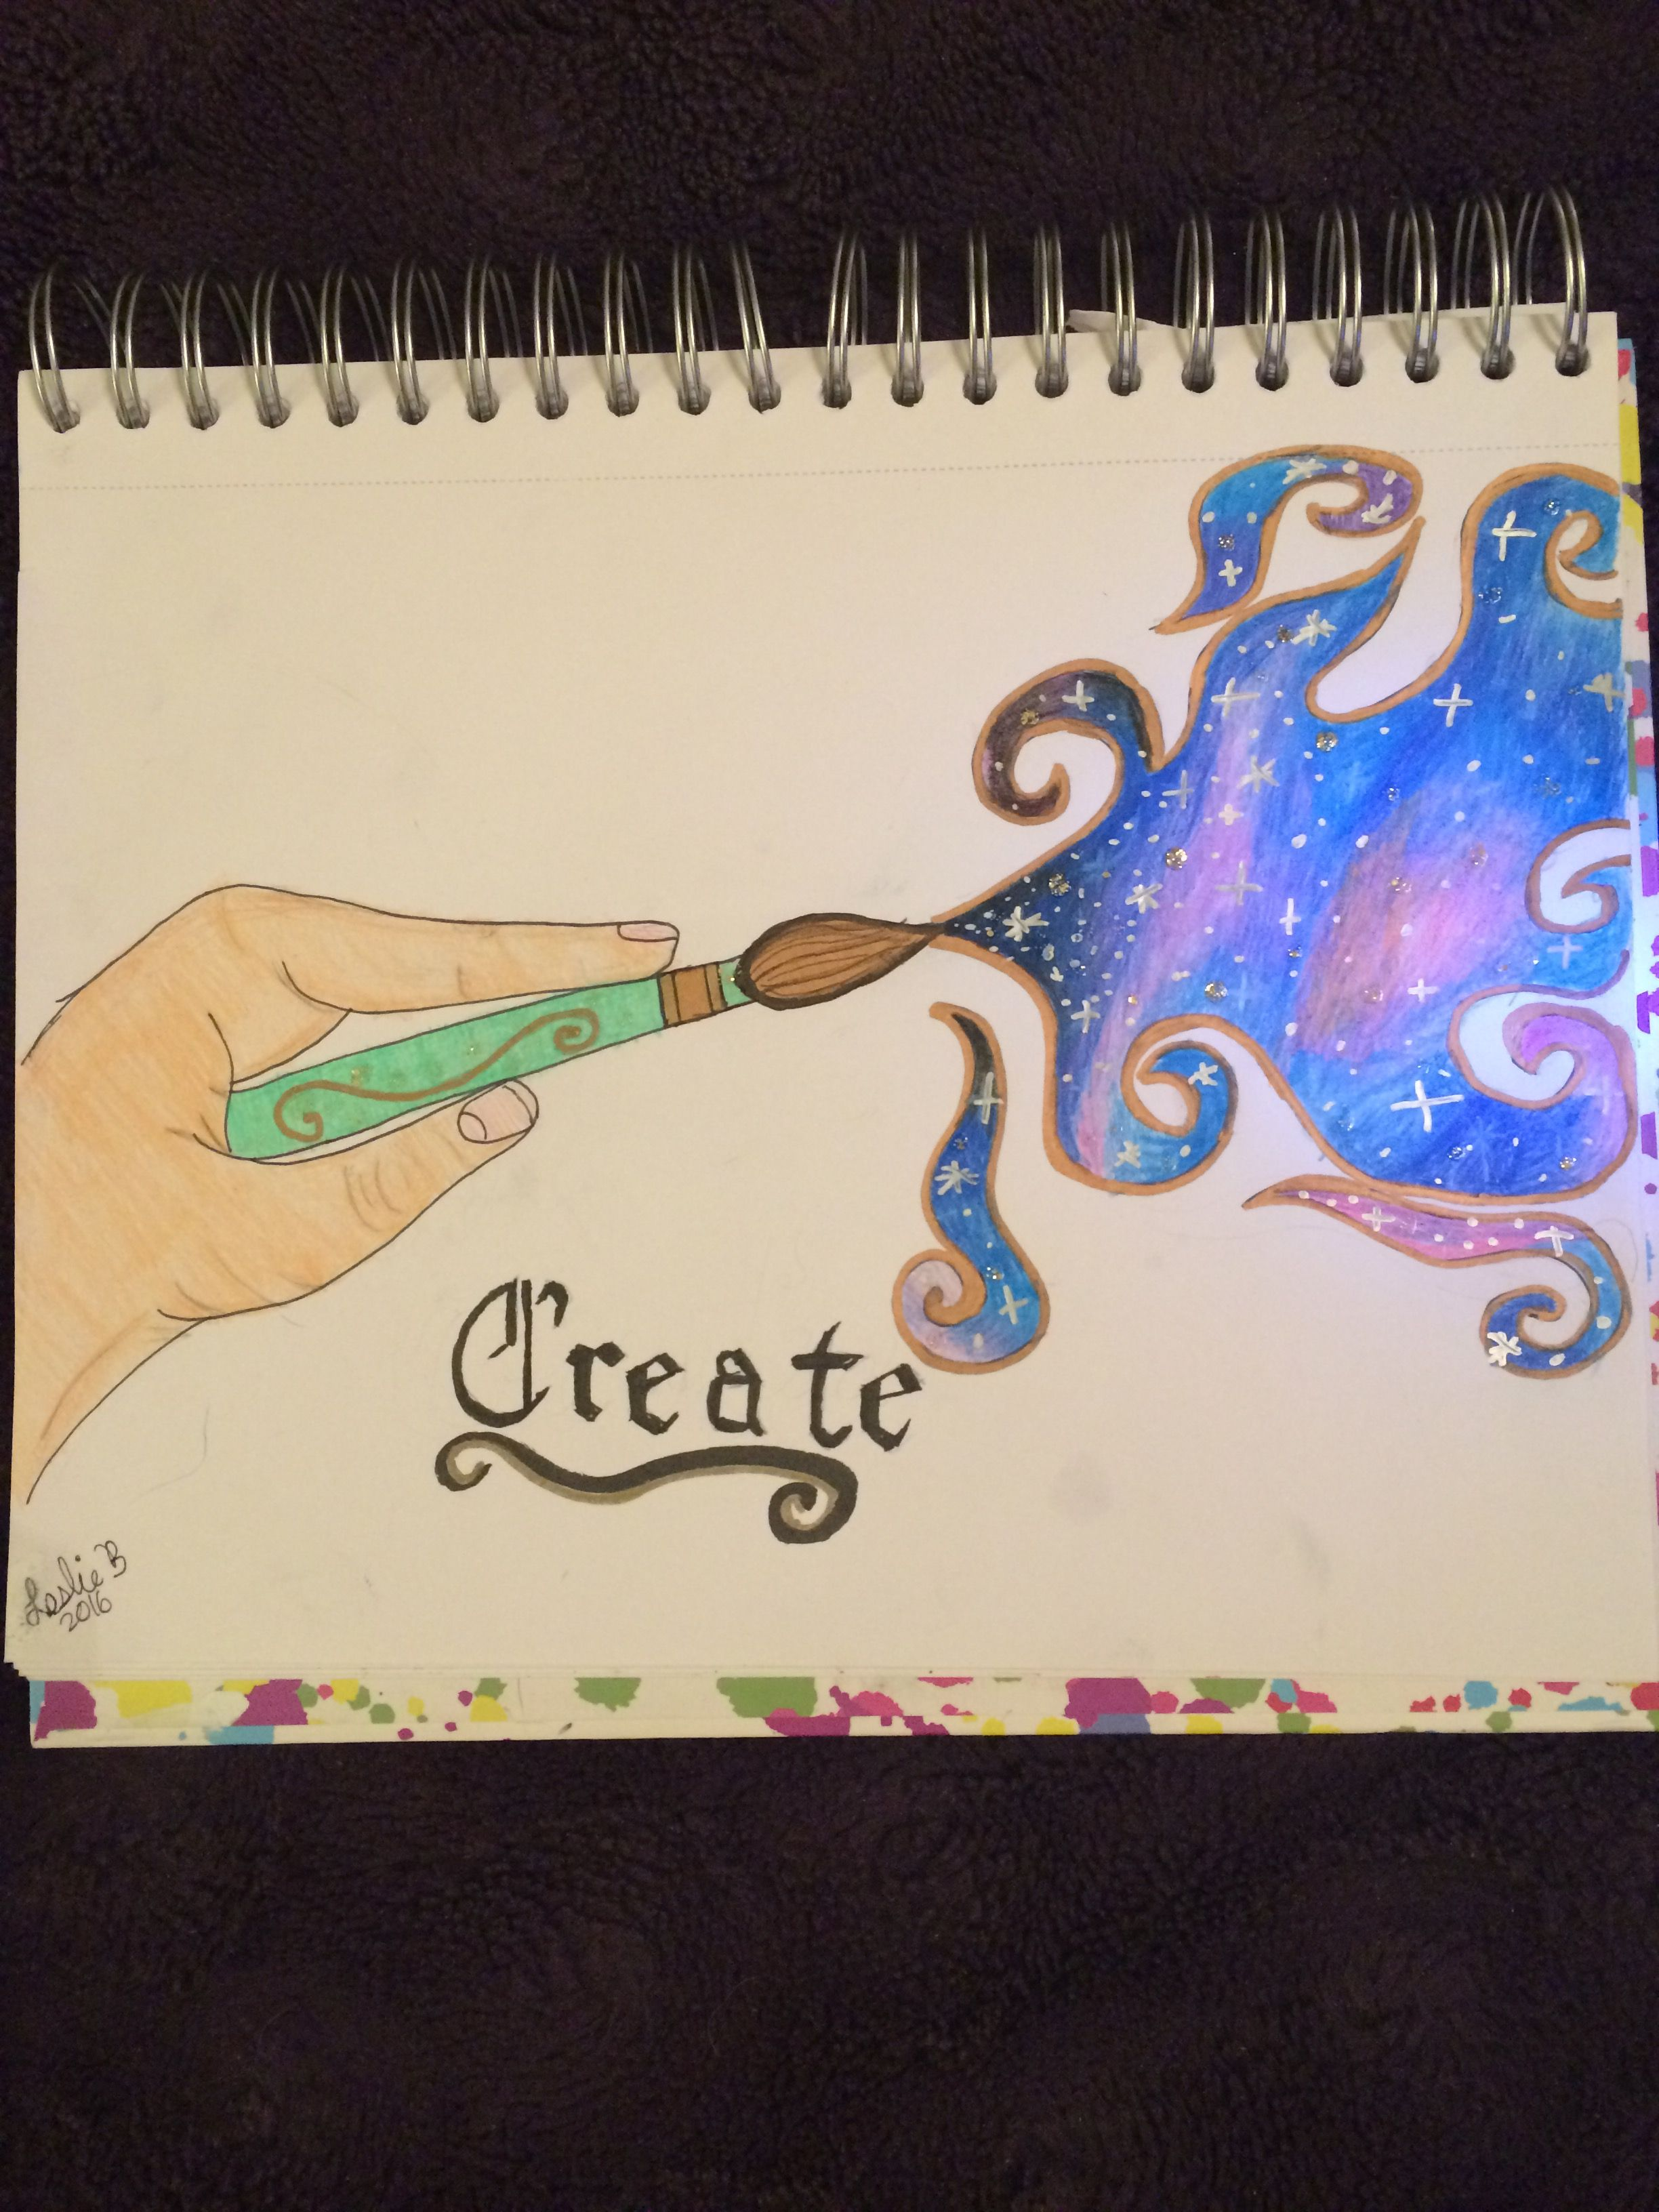 Let your creativity go beyond the Galaxy, new drawing I